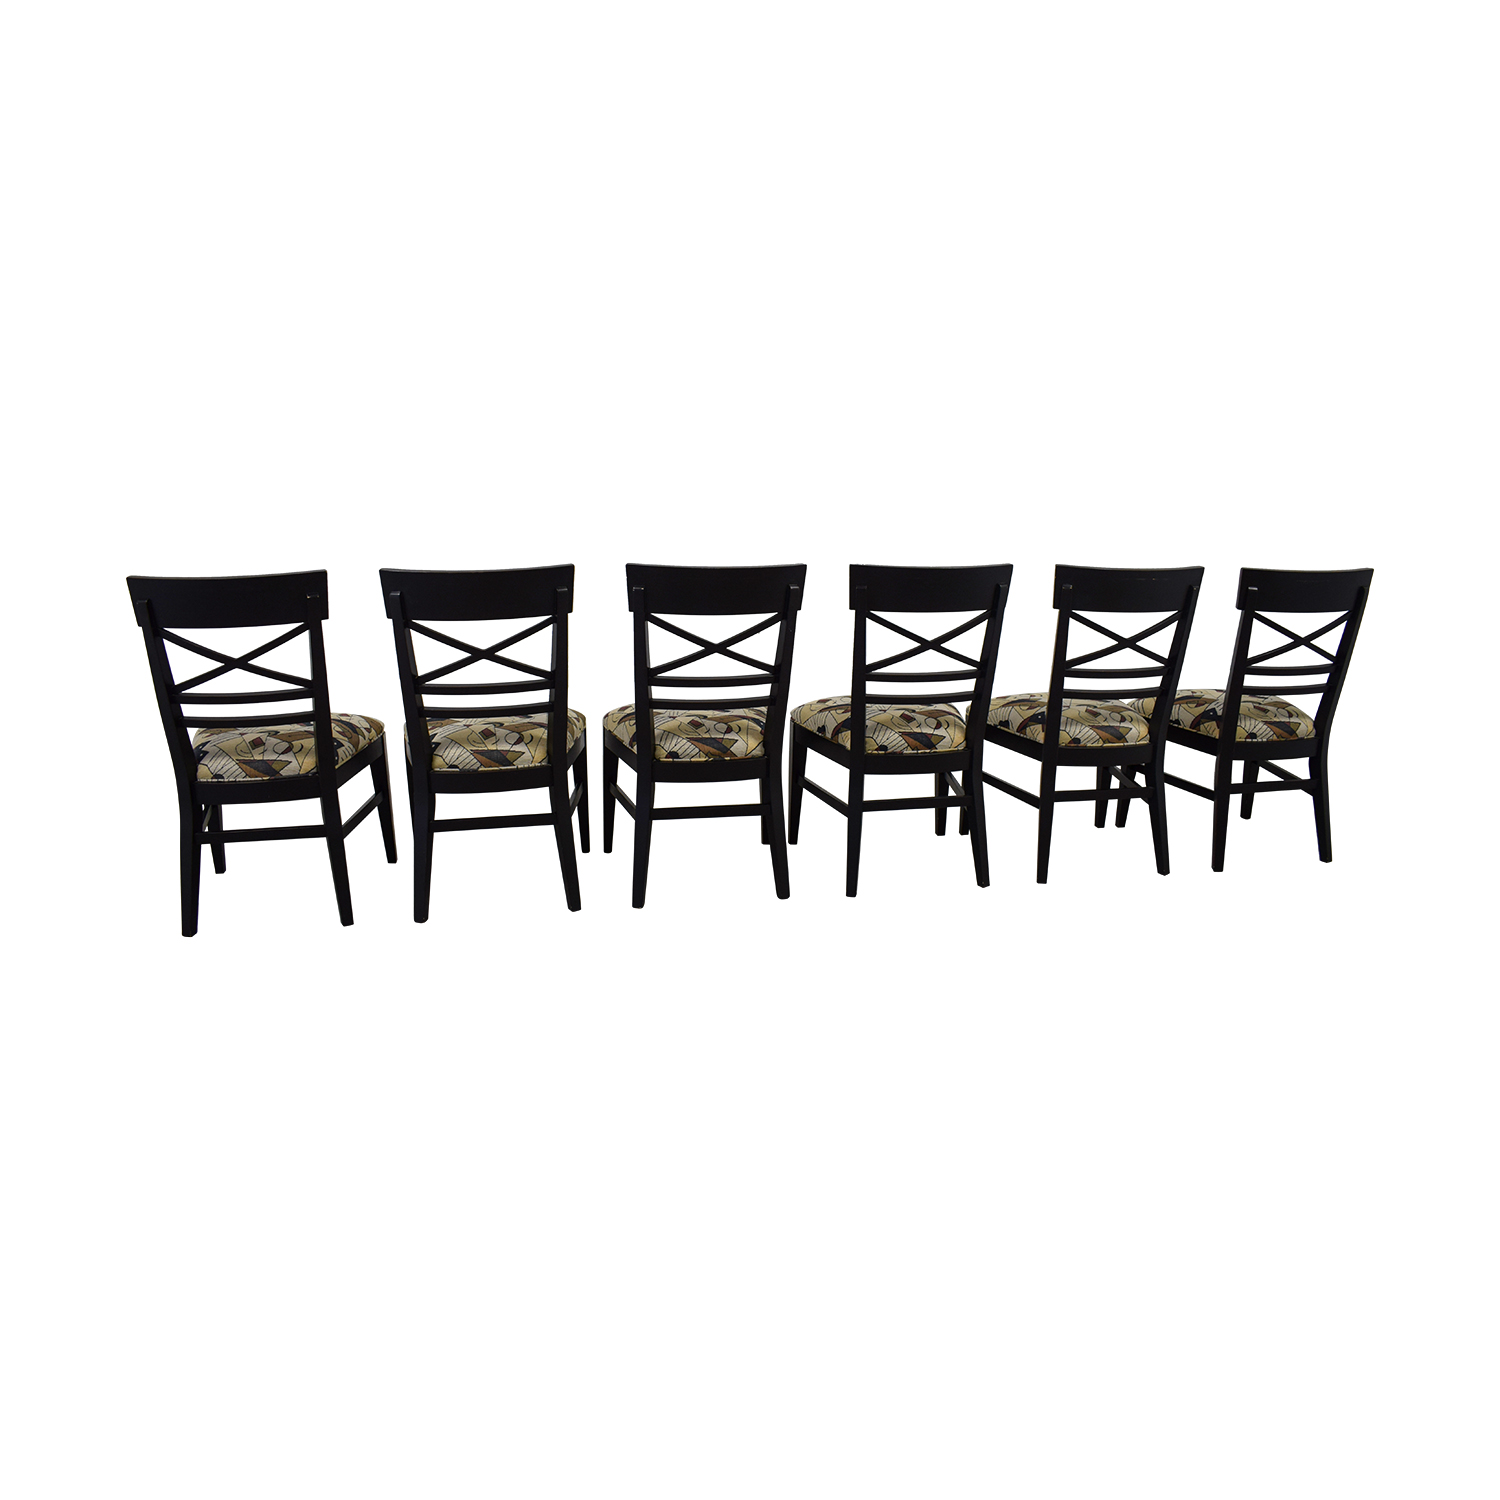 Ethan Allan Ethan Allan Geometric Upholstered Dining Chairs